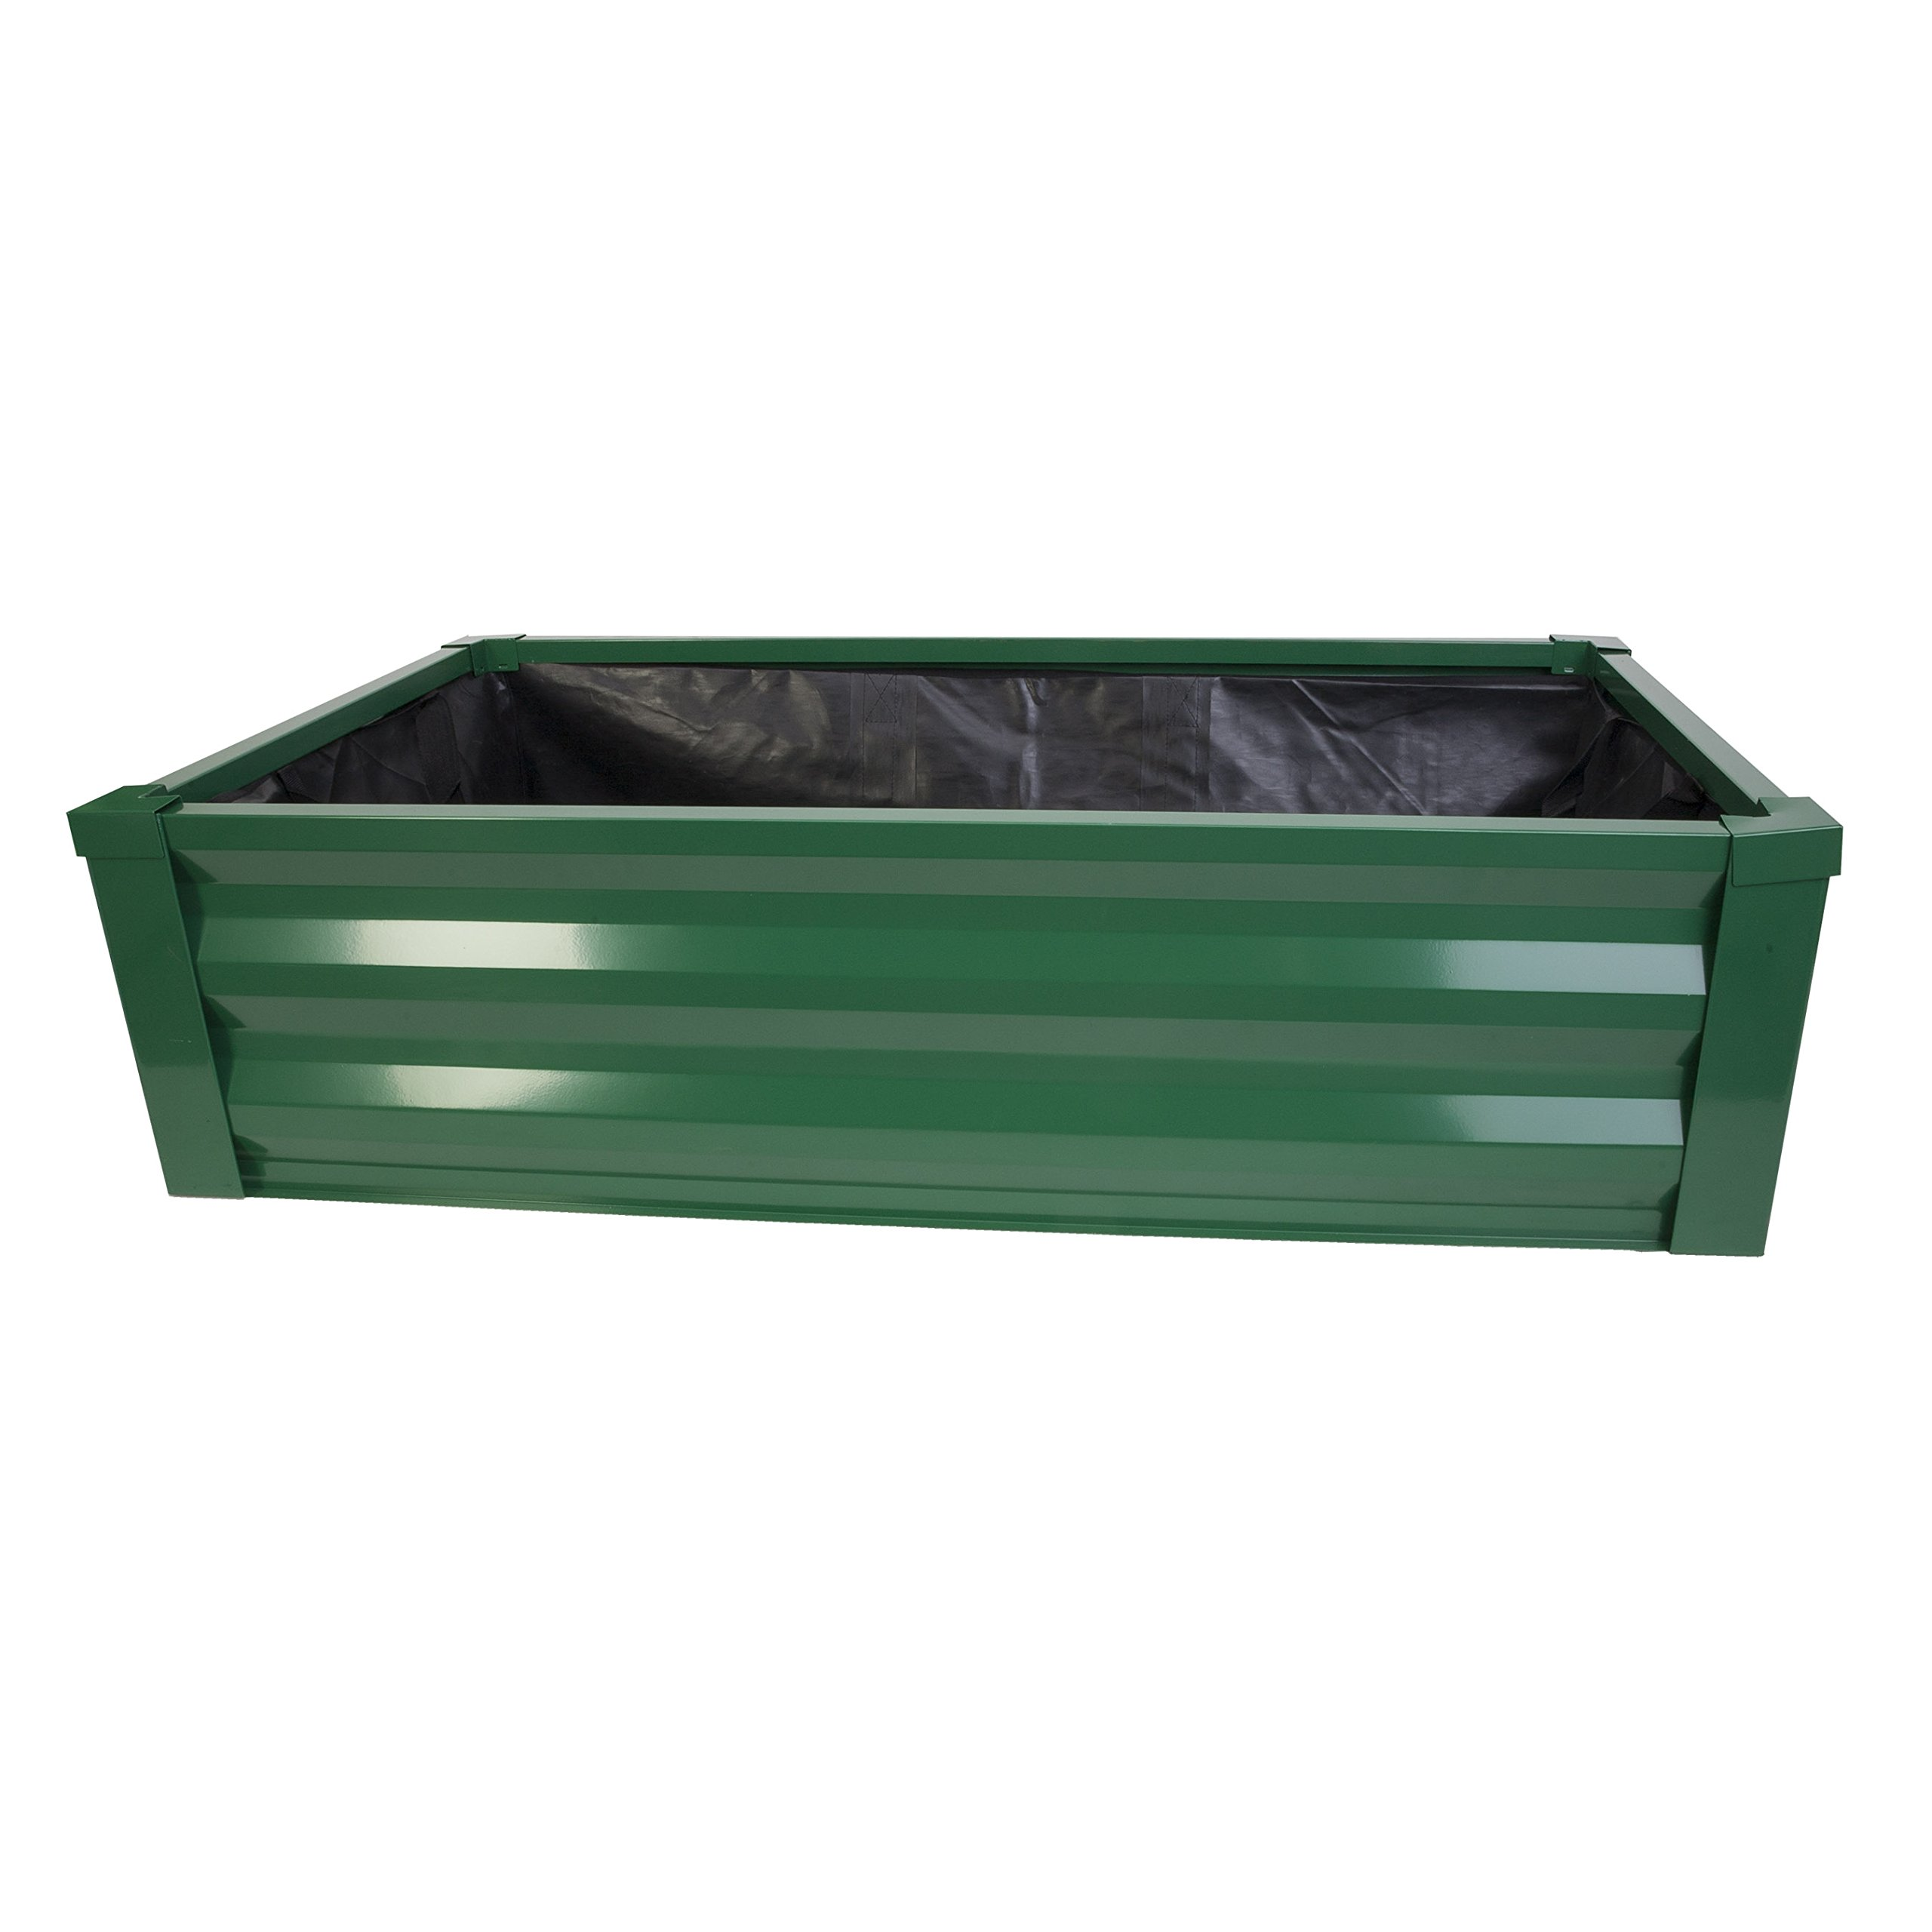 Panacea 83394 Raised Garden Bed Planter with Liner, Frost Green